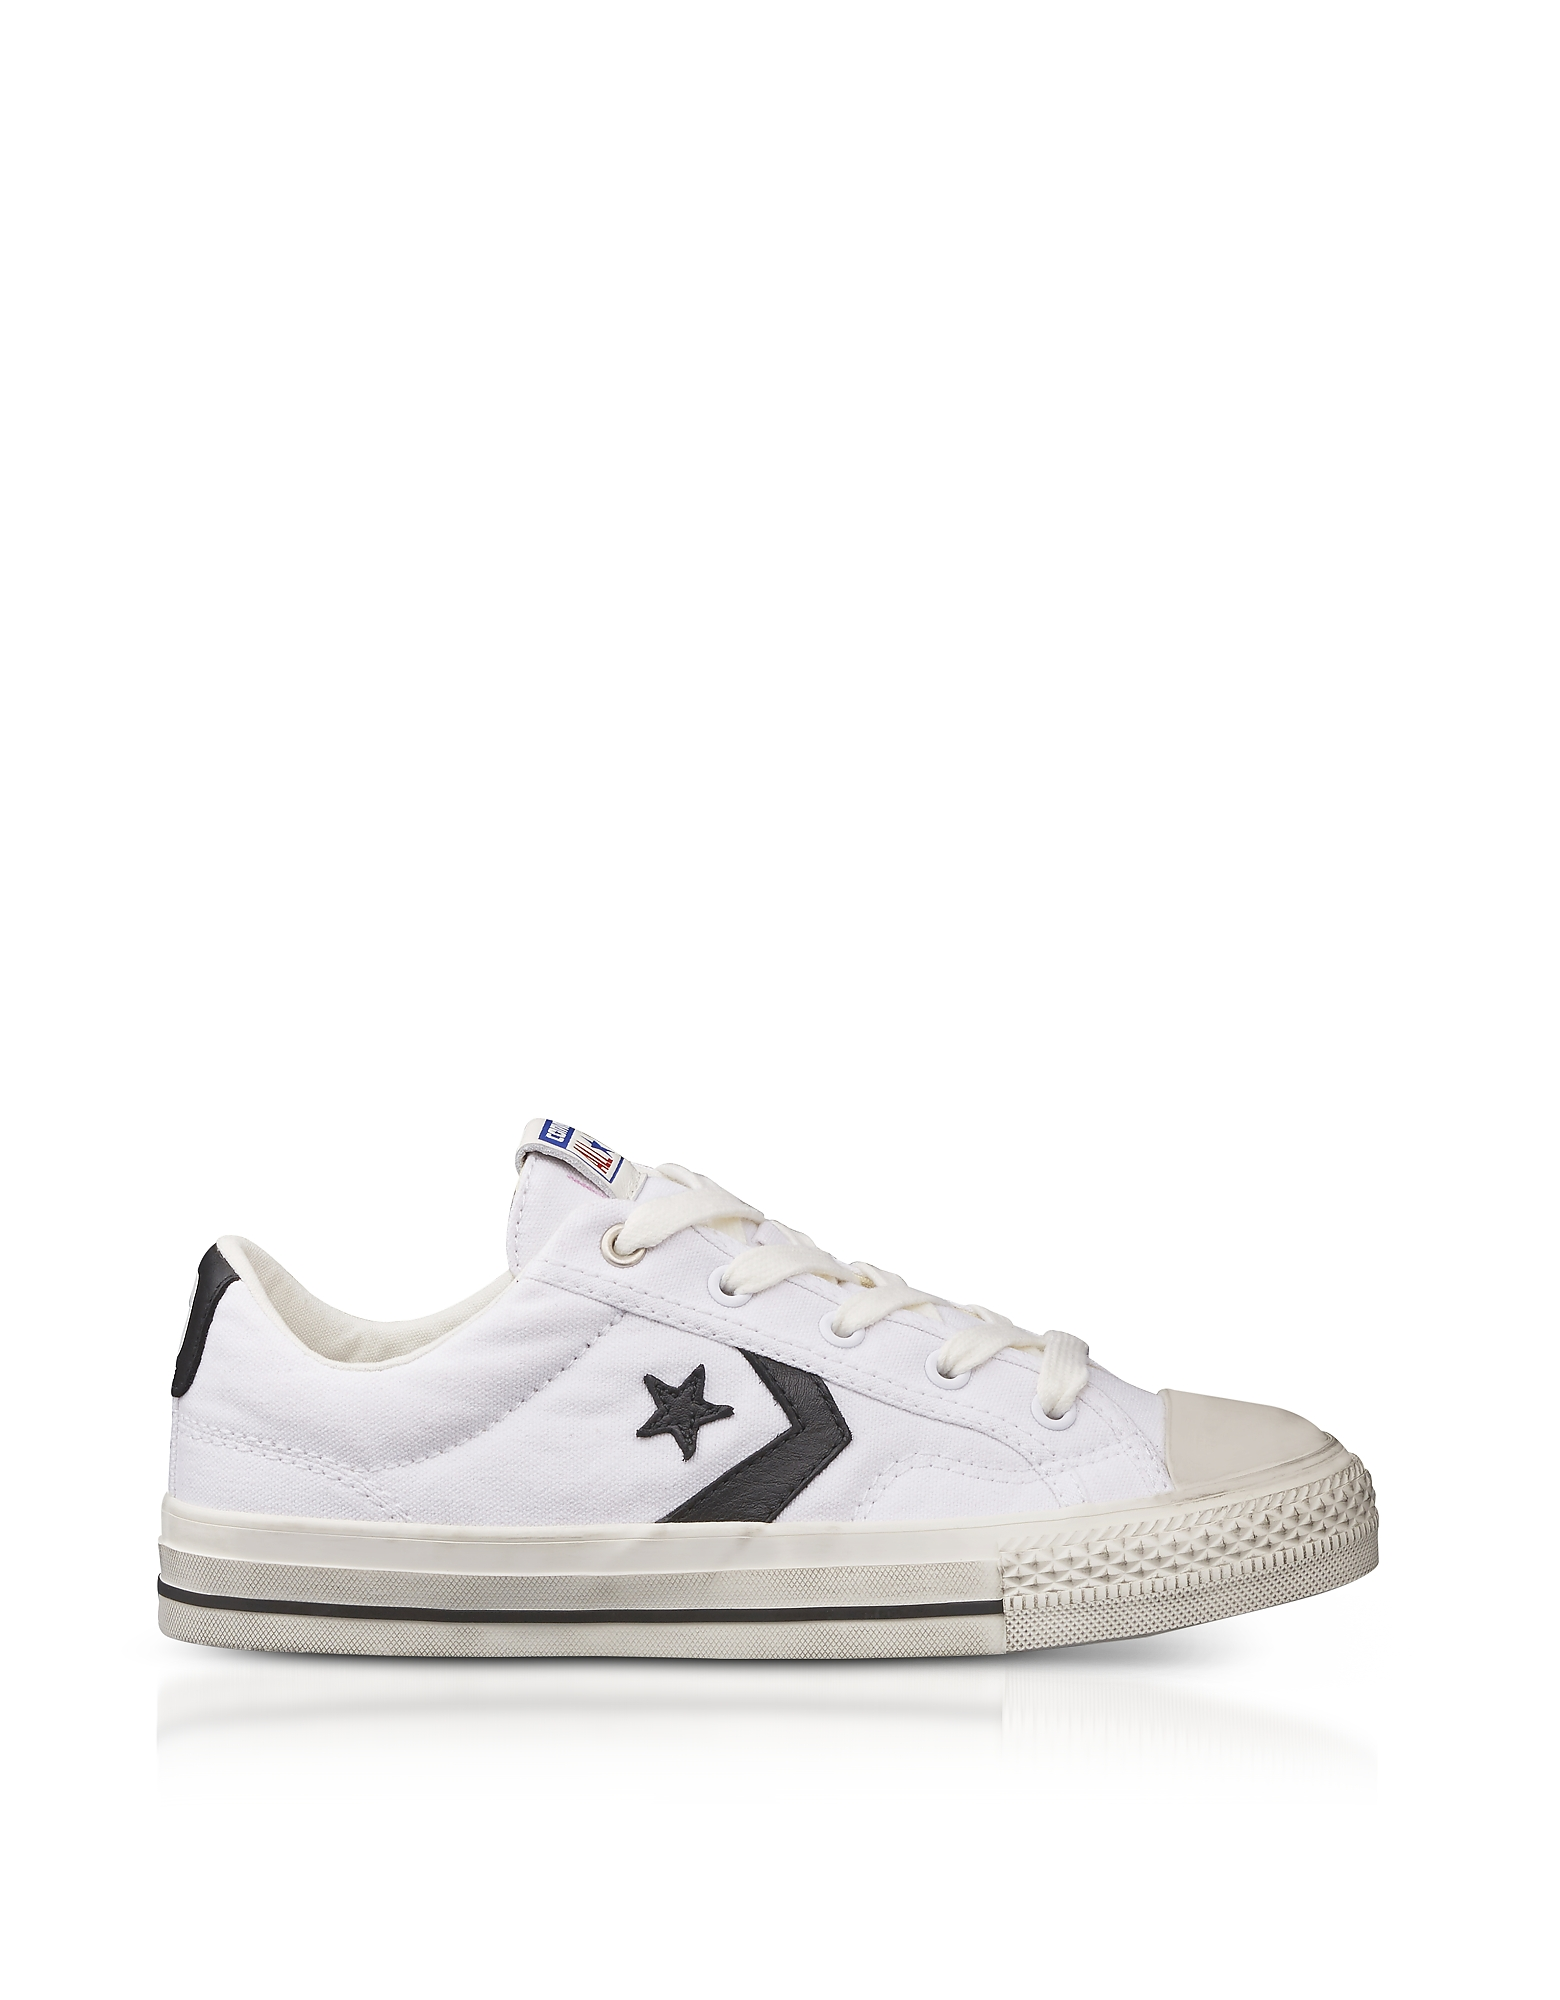 Converse Limited Edition Shoes, White Star Player Distressed Ox Canvas Men's Sneakers